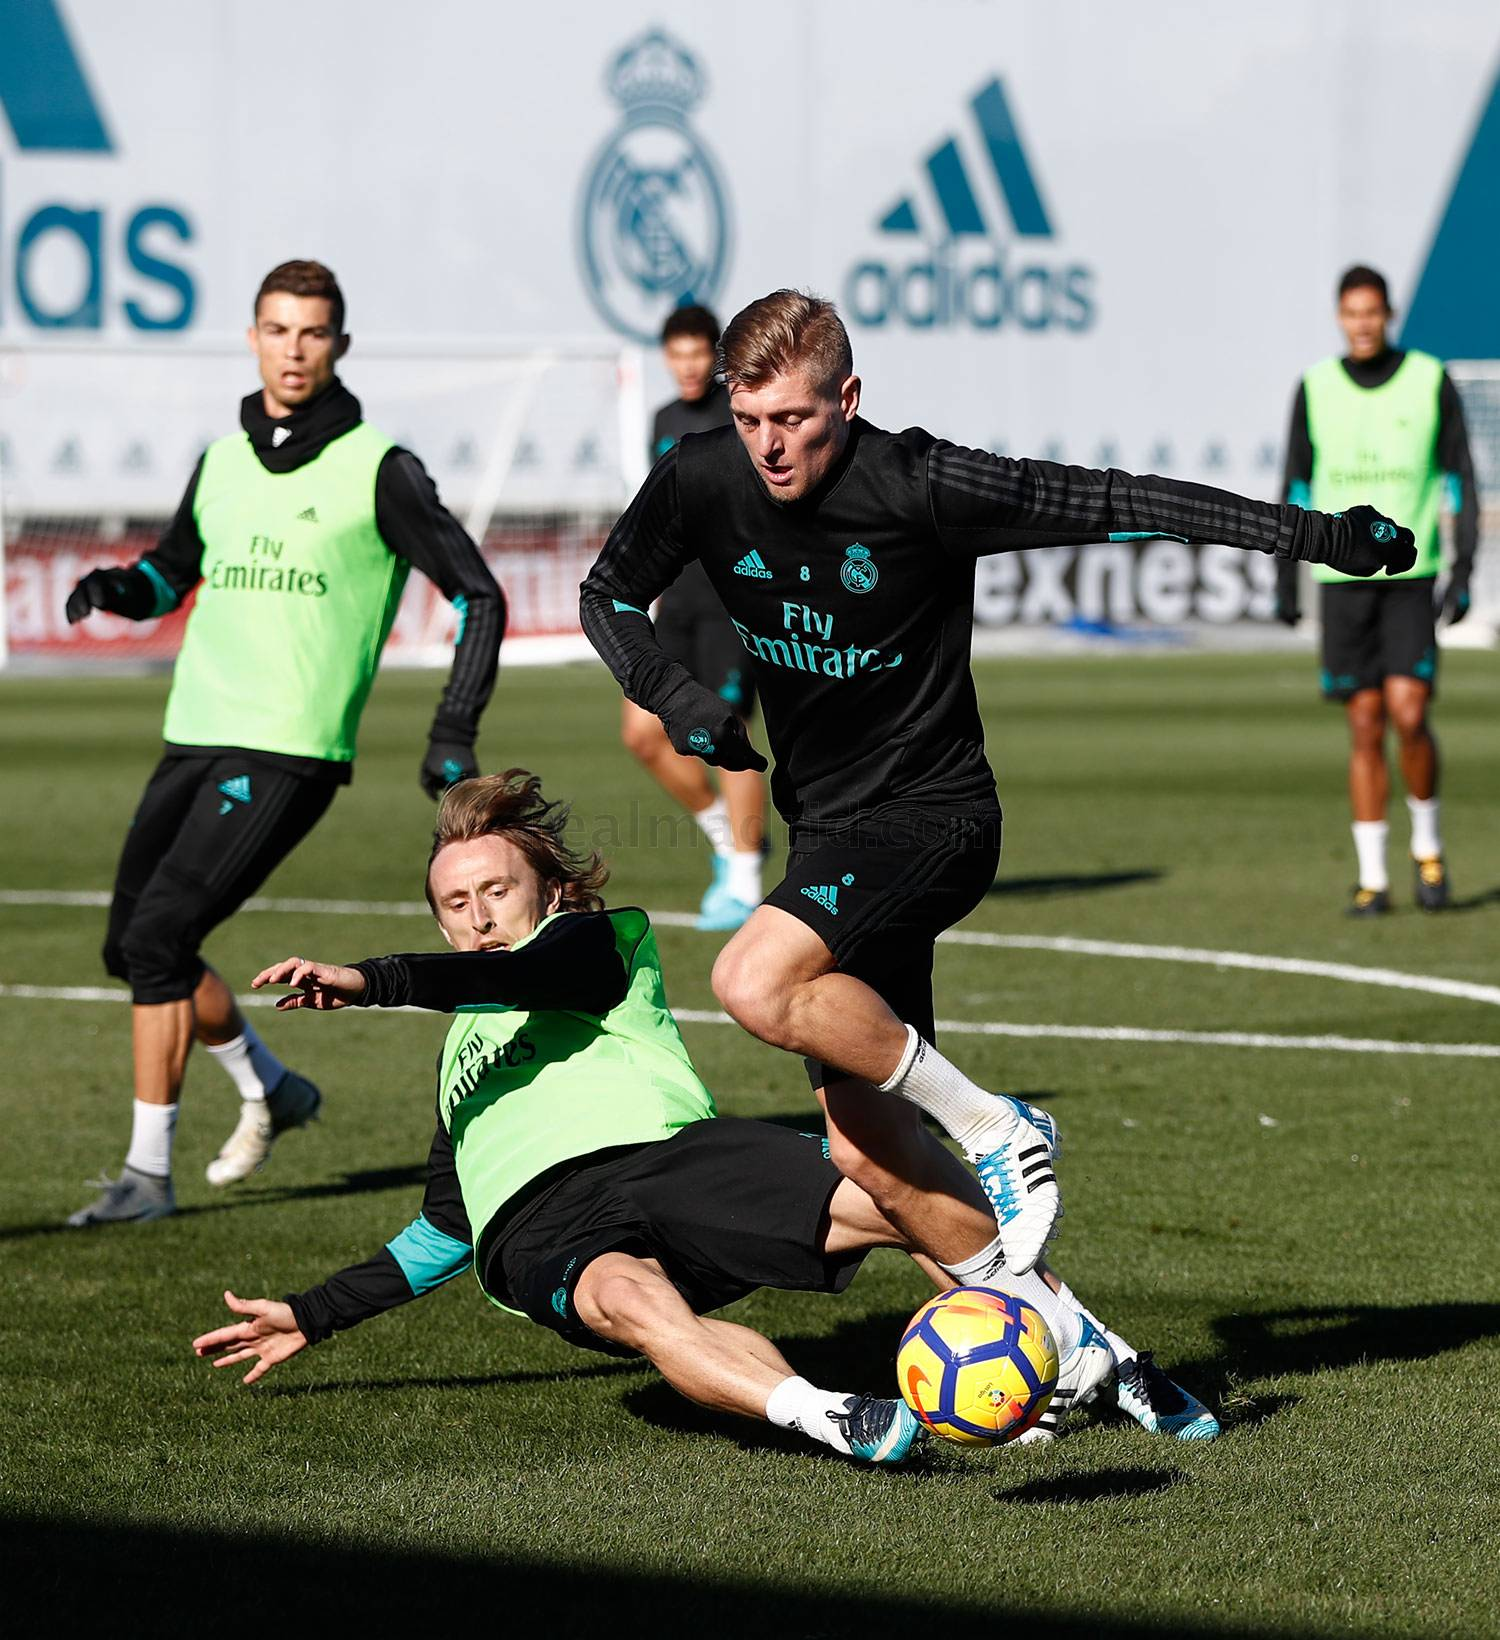 Real Madrid - Entrenamiento del Real Madrid - 29-11-2017